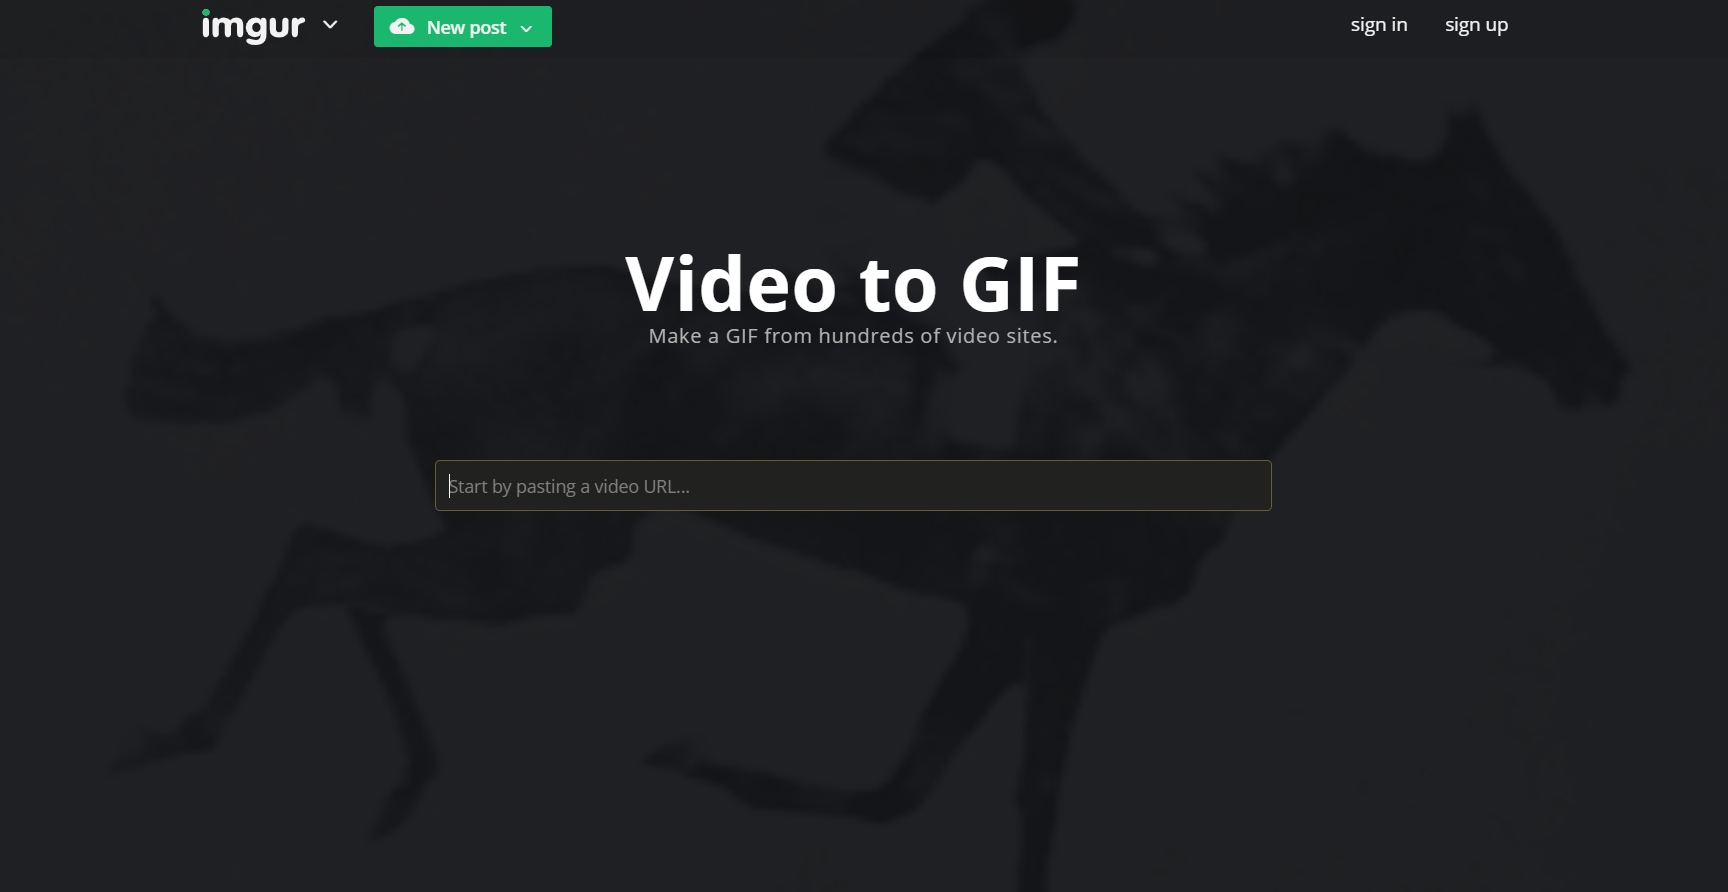 How to turn an Imgur video into a GIF